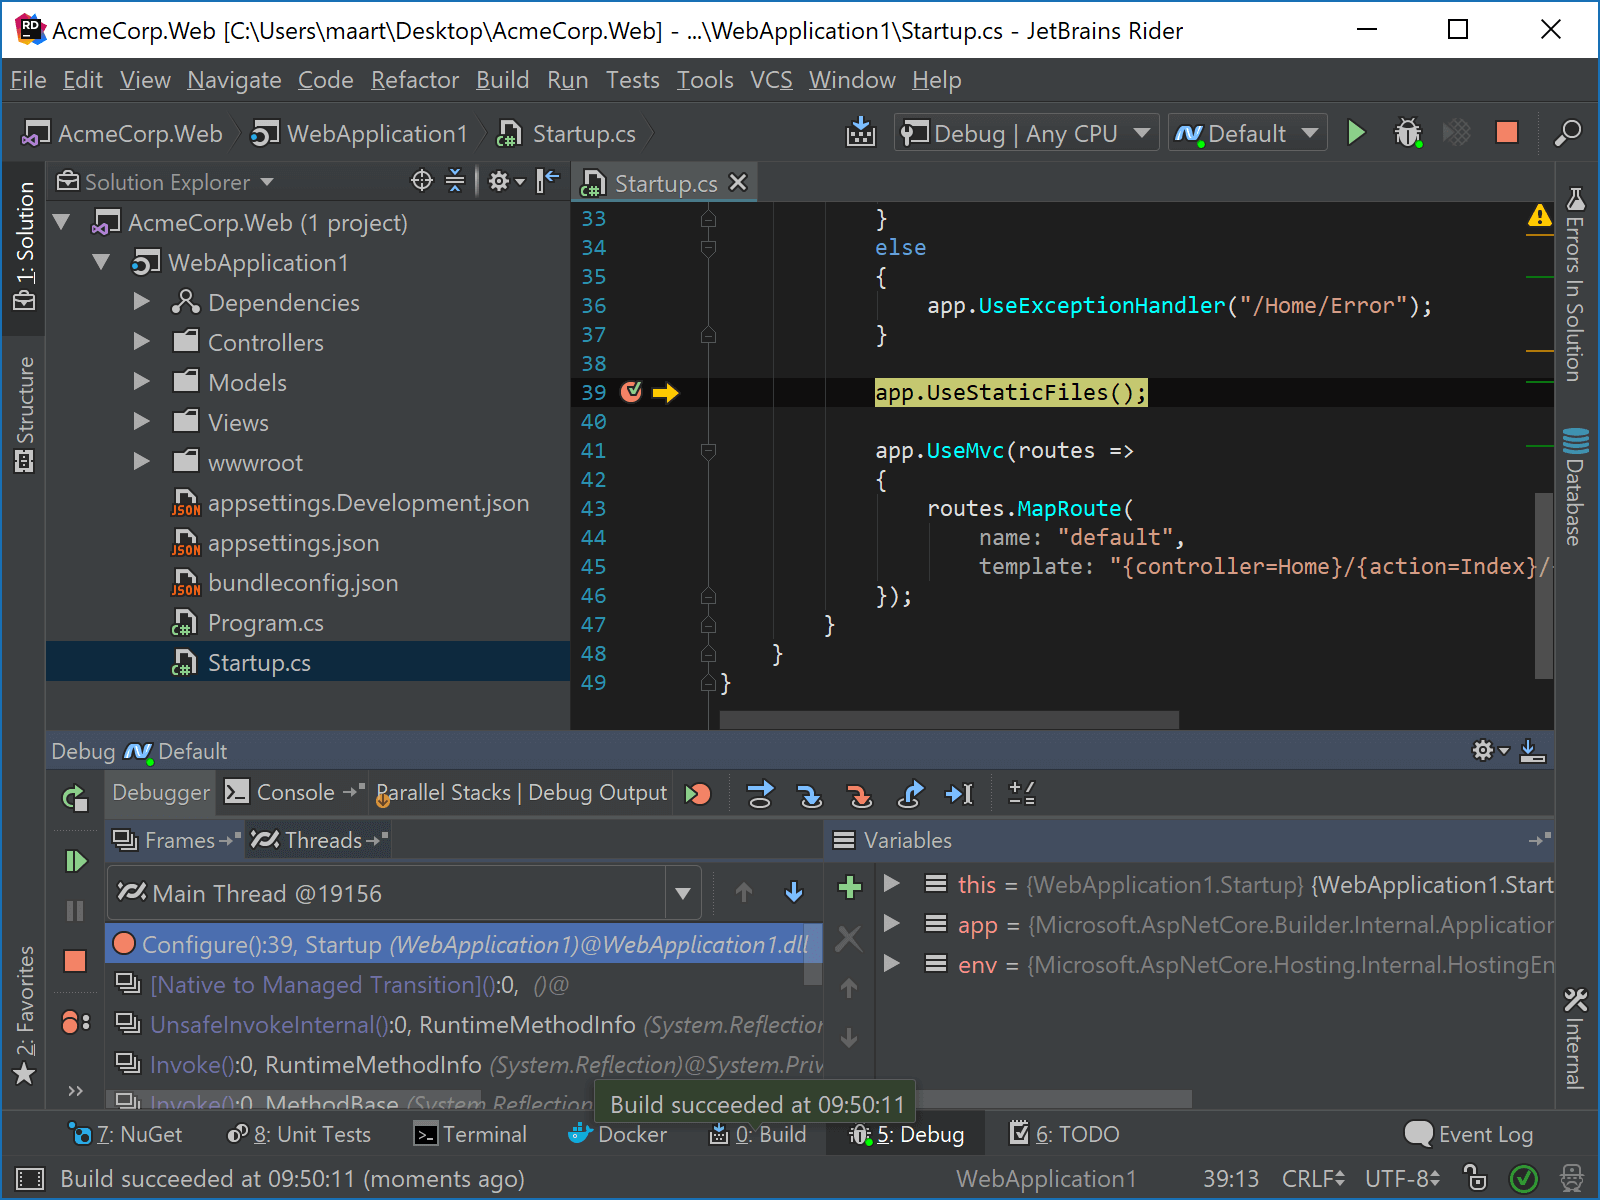 JetBrainsRider: Stepping into library code